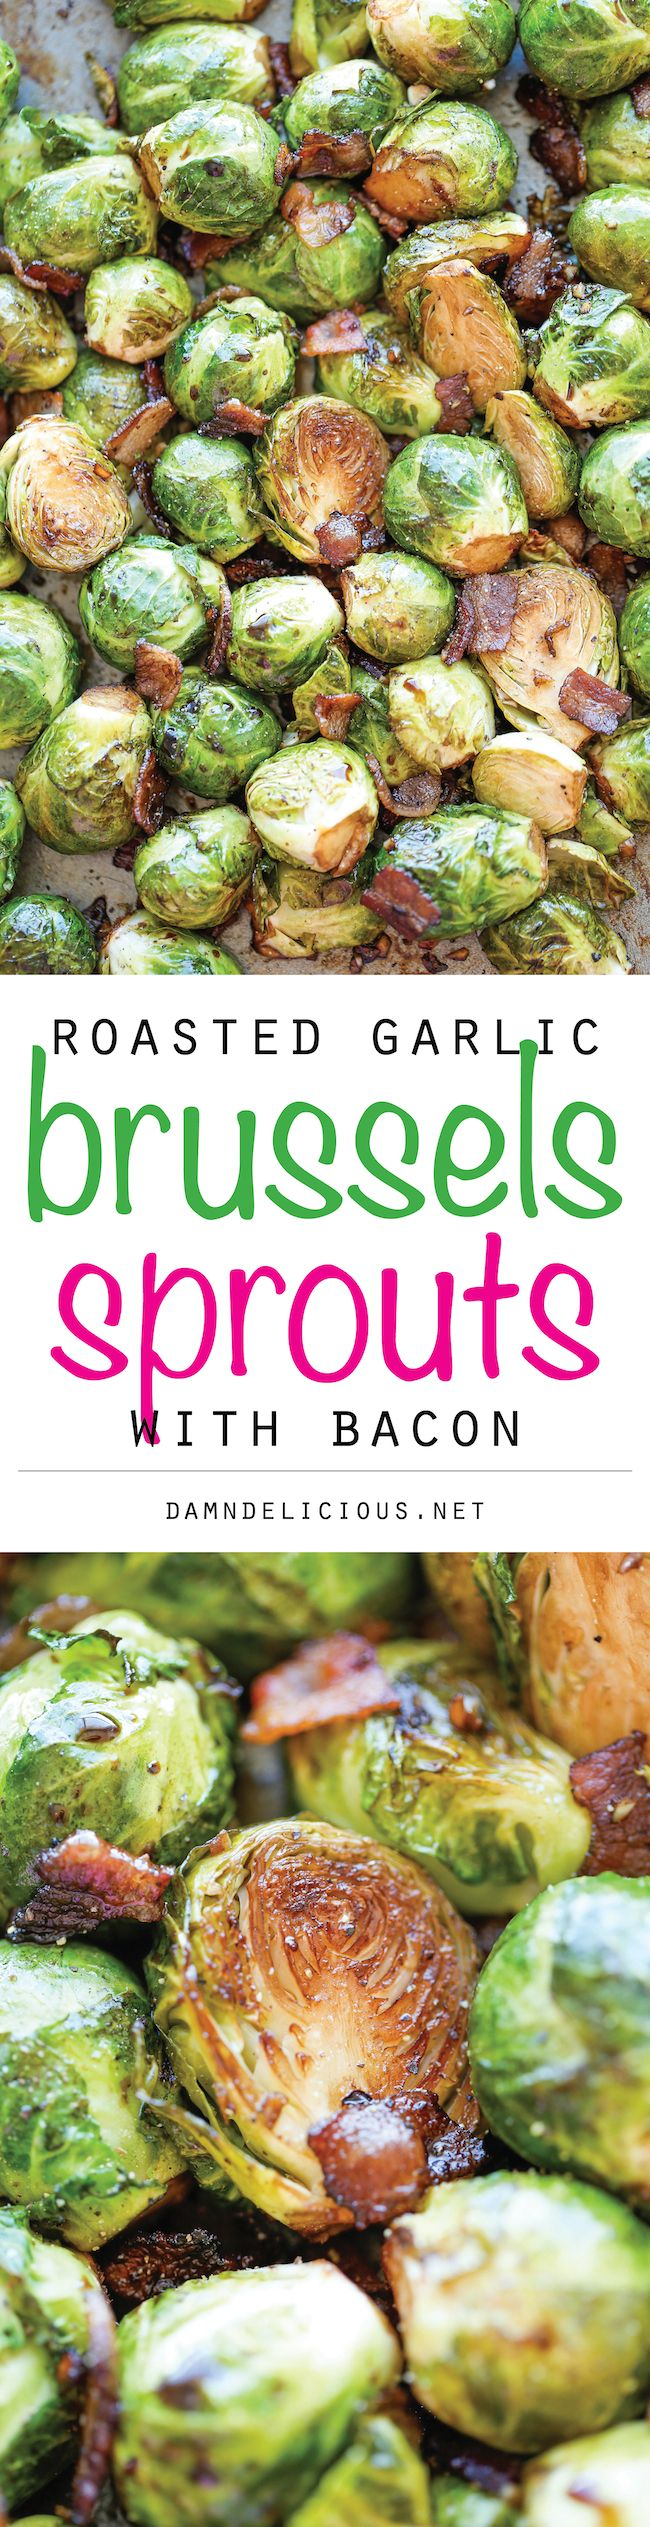 Roasted Garlic Brussels Sprouts - The best garlic brussels sprouts ever, made with garlic and crisp bacon goodness! Minus the honey!